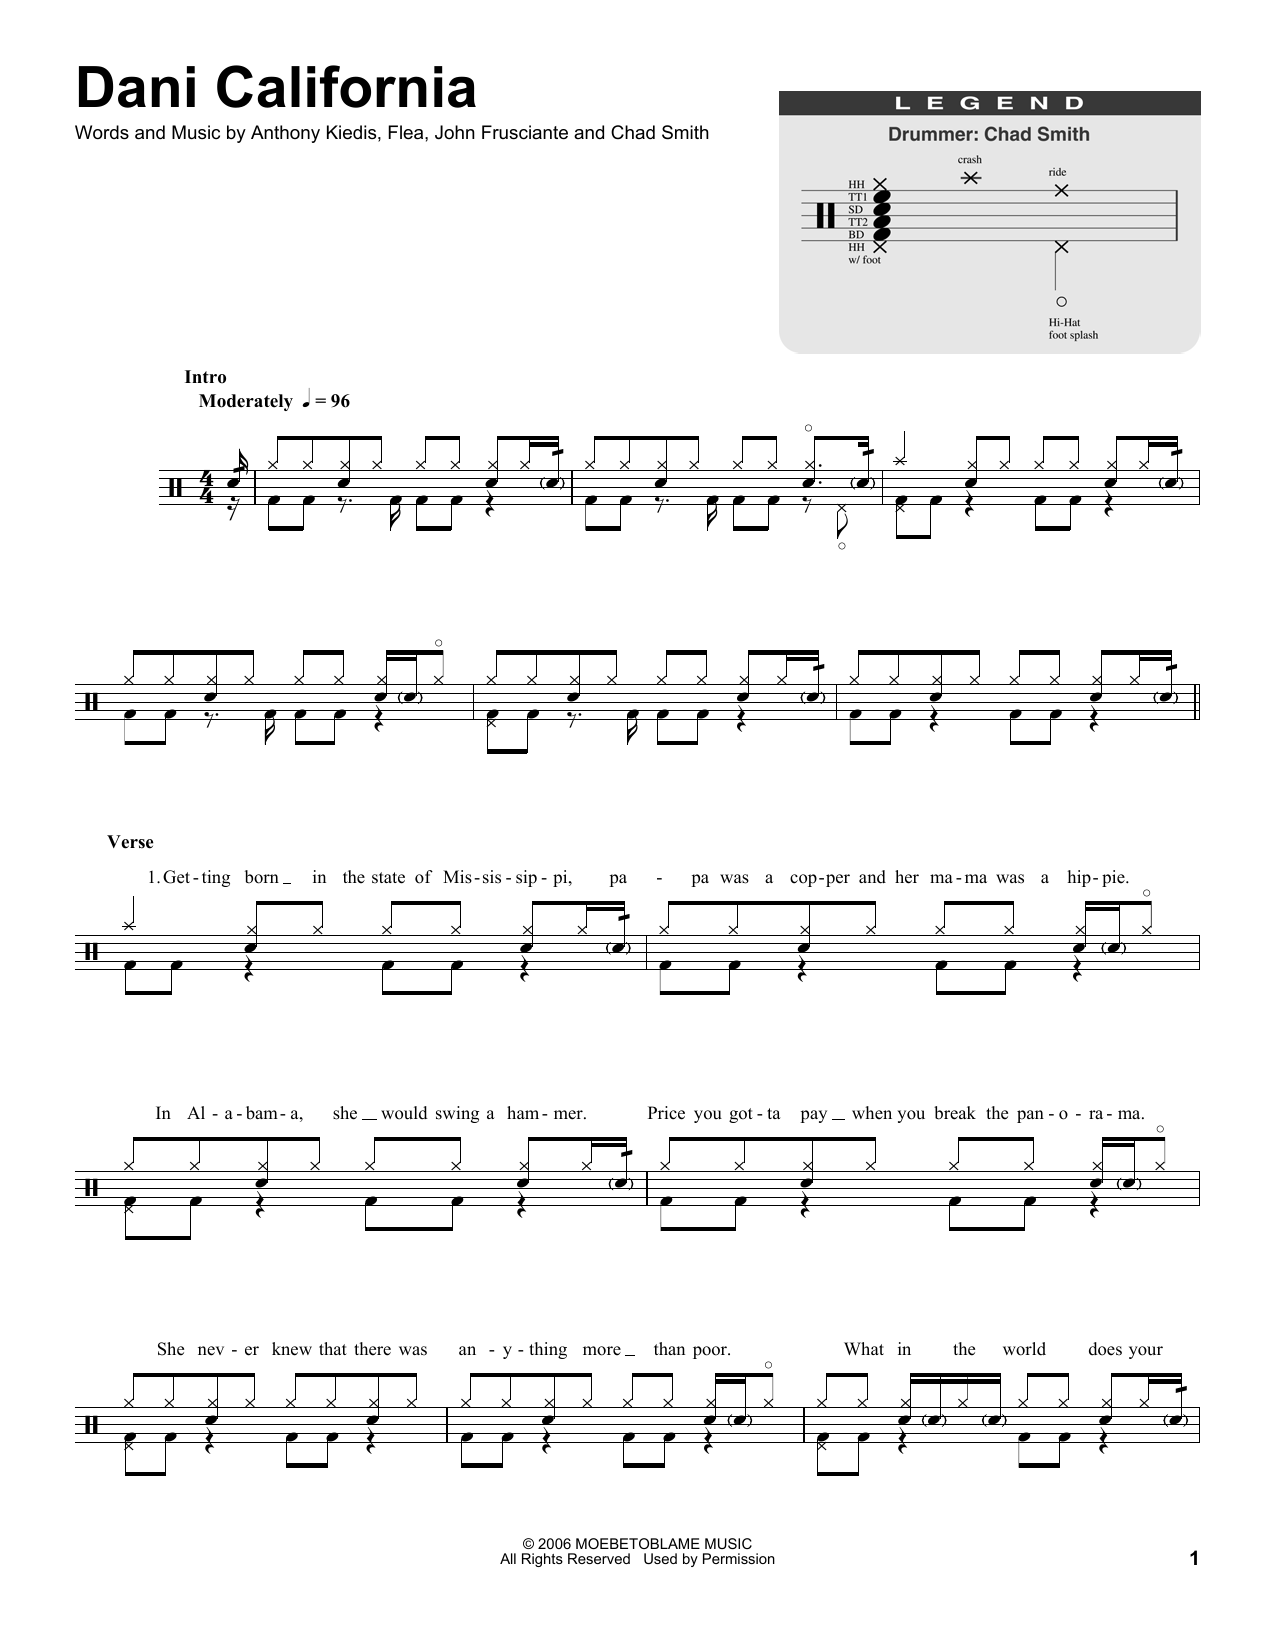 Dani California Sheet Music